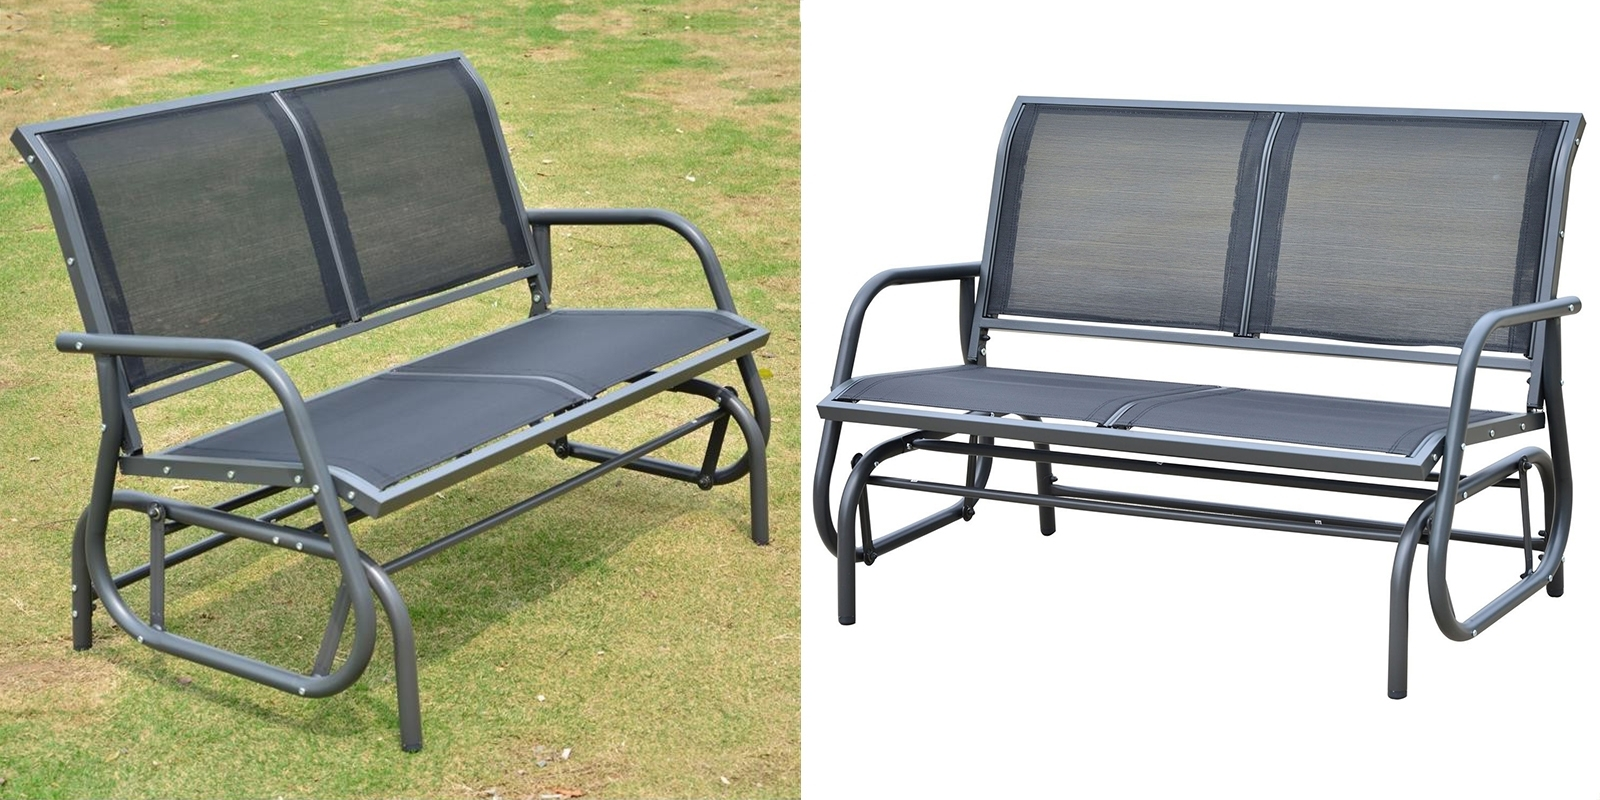 Patio Rocking Chairs And Gliders Regarding 2019 25 Best Patio Chairs To Buy Right Now (View 12 of 20)